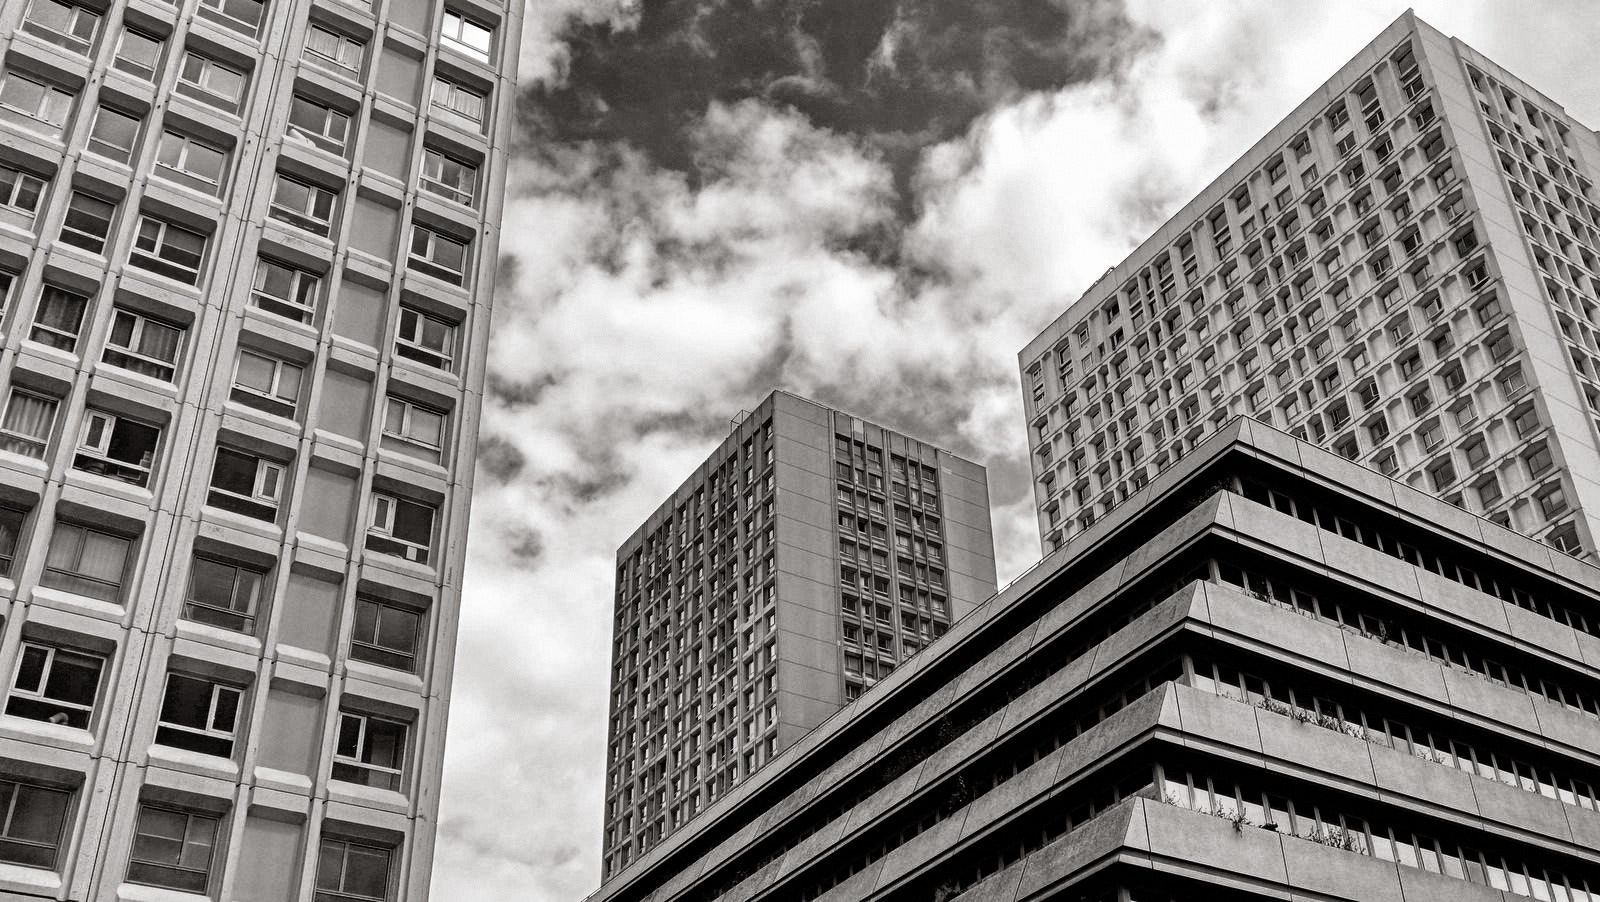 Greyscale Photography of High Rise Building, Architecture, Black-and-white, Building, City, HQ Photo